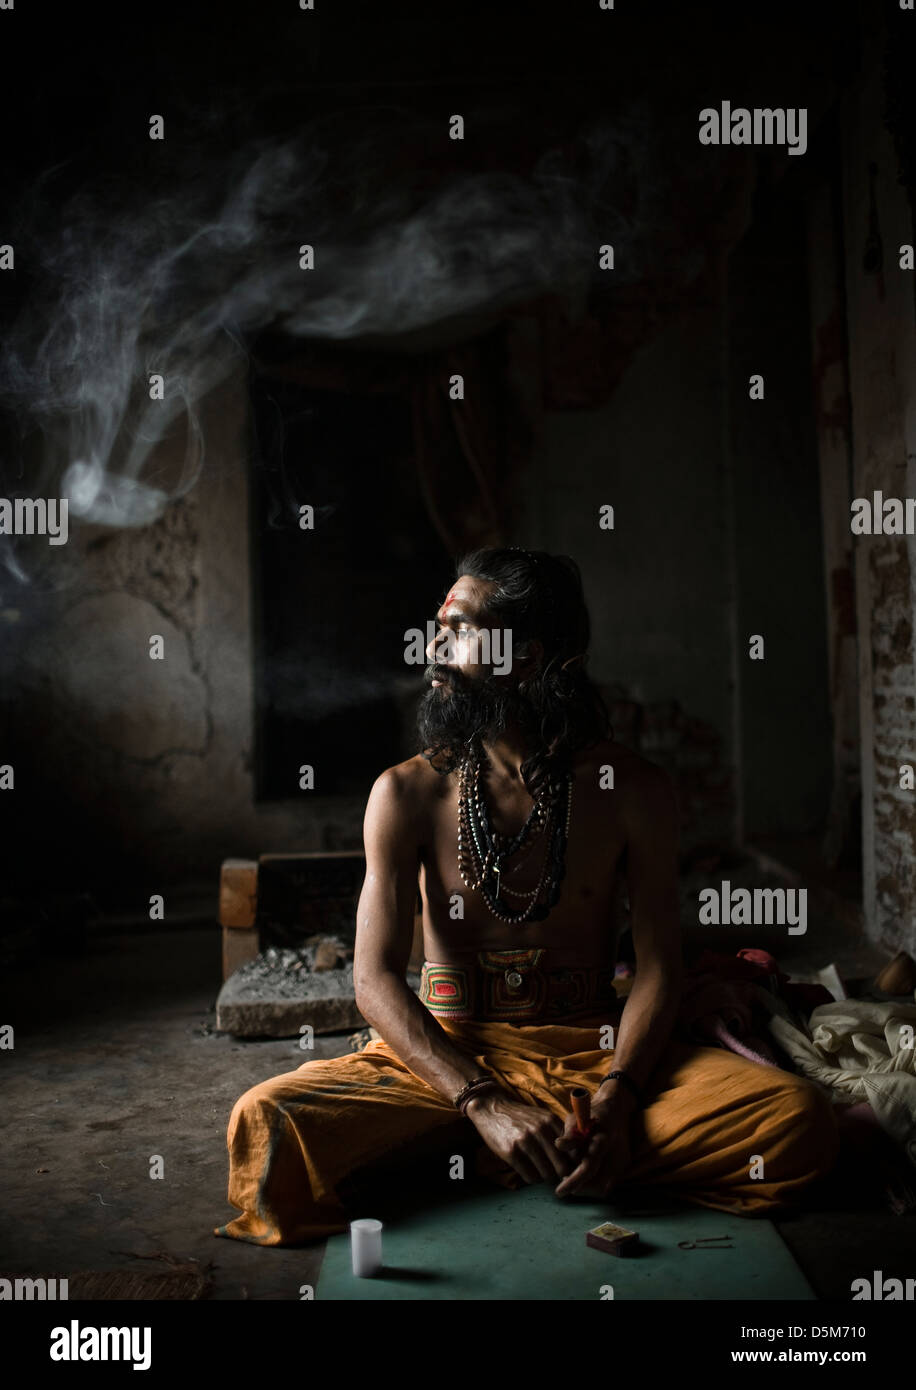 Sadhu smoking marihuana at his home in Varanasi Stock Photo